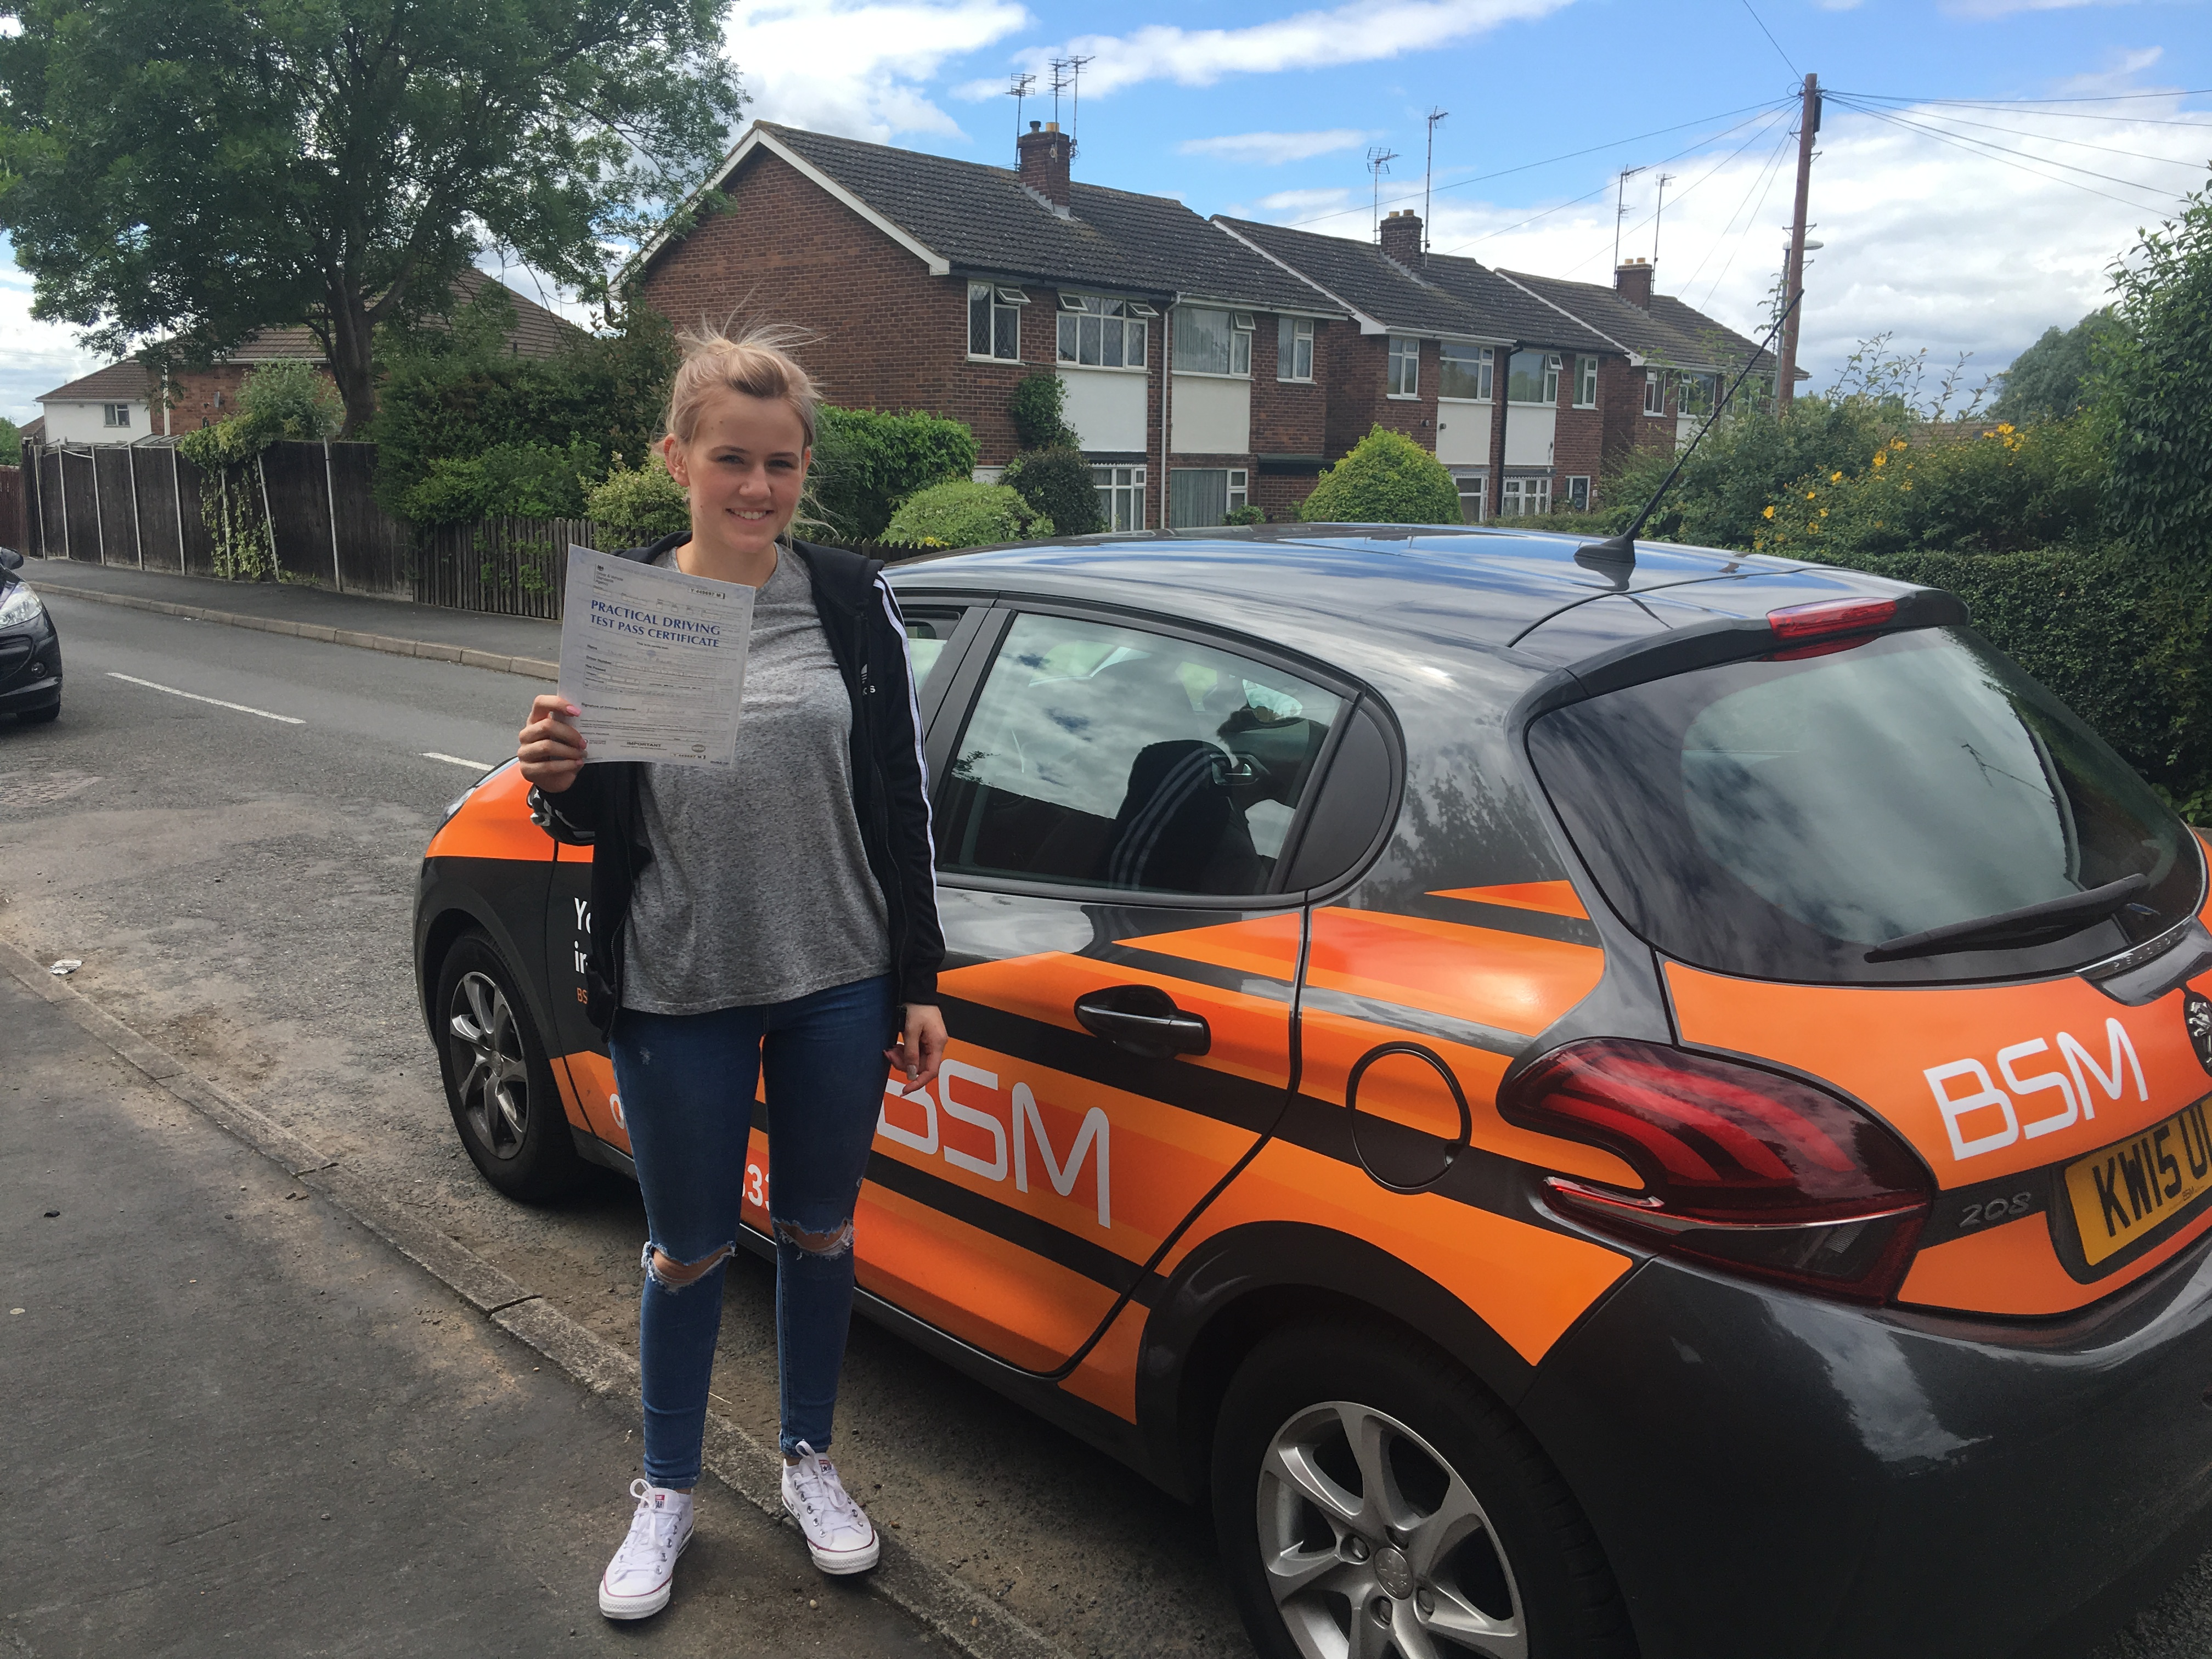 driving lessons leicester - Panchal Driving Academy - Yasmin